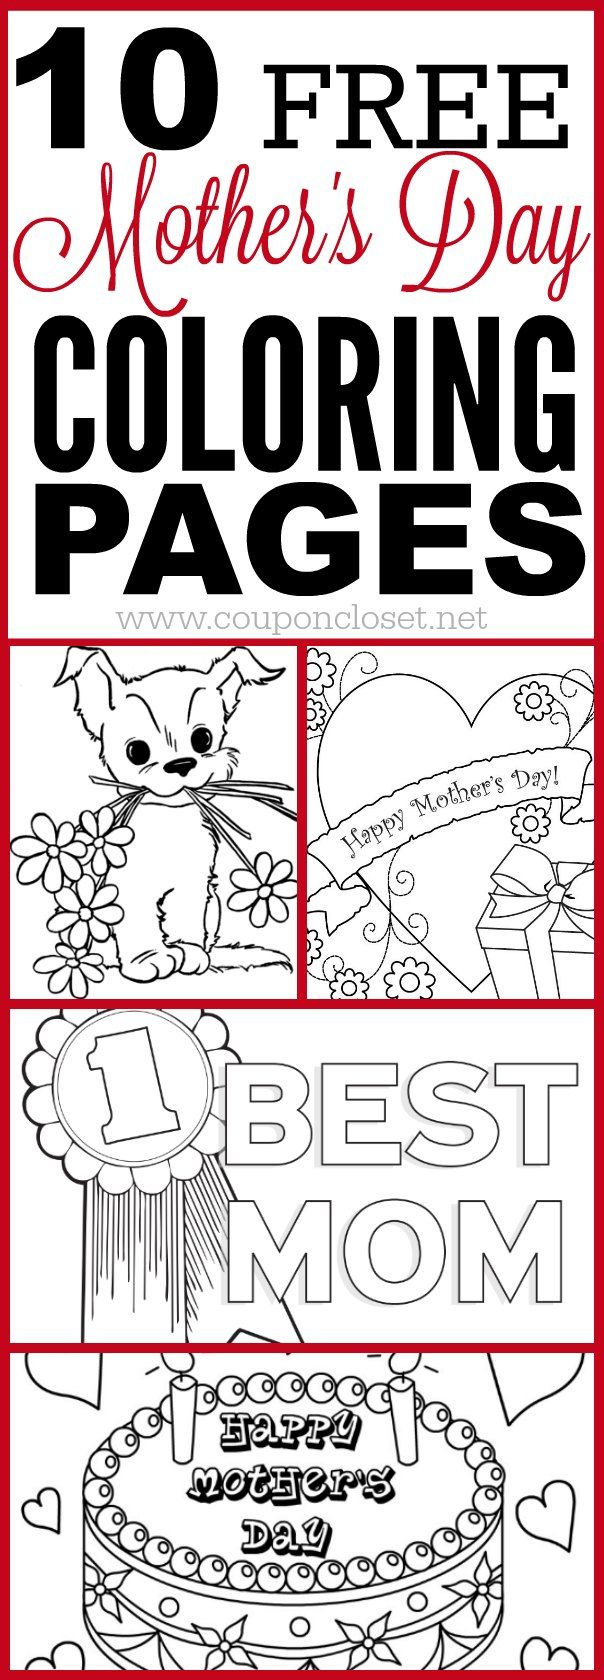 best 25 mothers day coloring pages ideas on pinterest images of